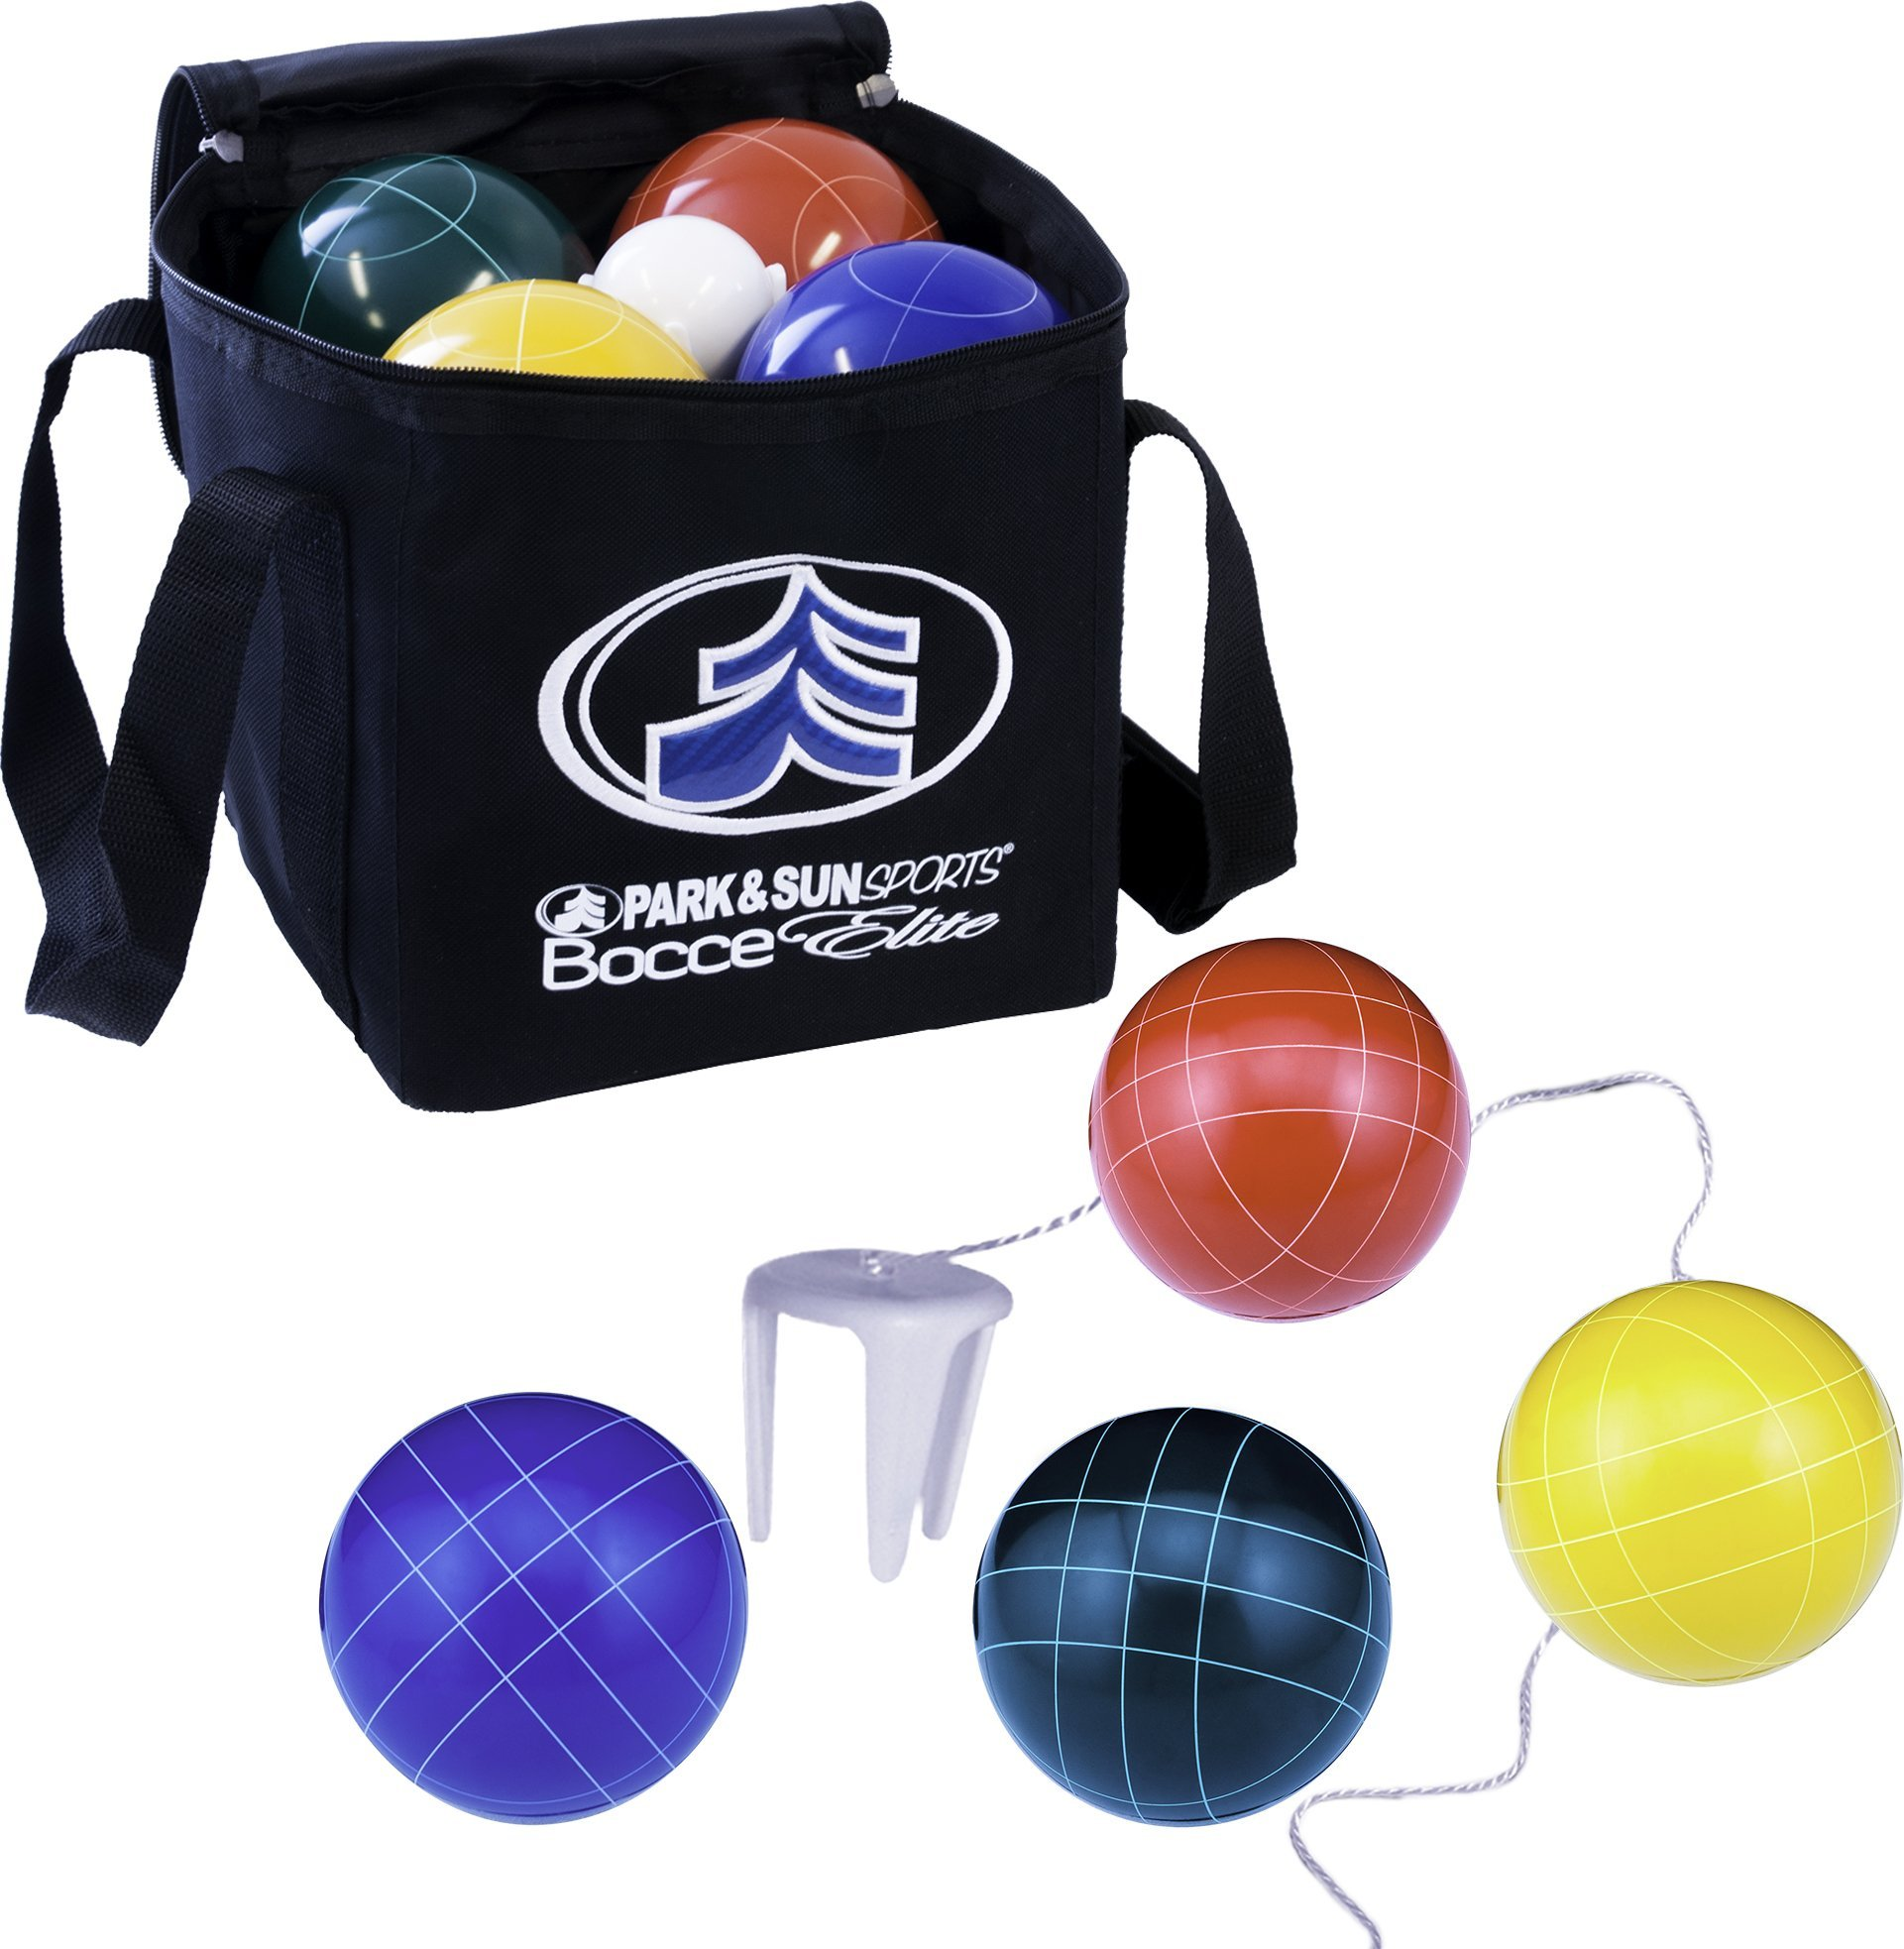 Park & Sun Sports Bocce Ball Set with Deluxe Carrying Bag: Tournament Elite, 100 mm Poly-Resin Balls by Park & Sun Sports (Image #1)